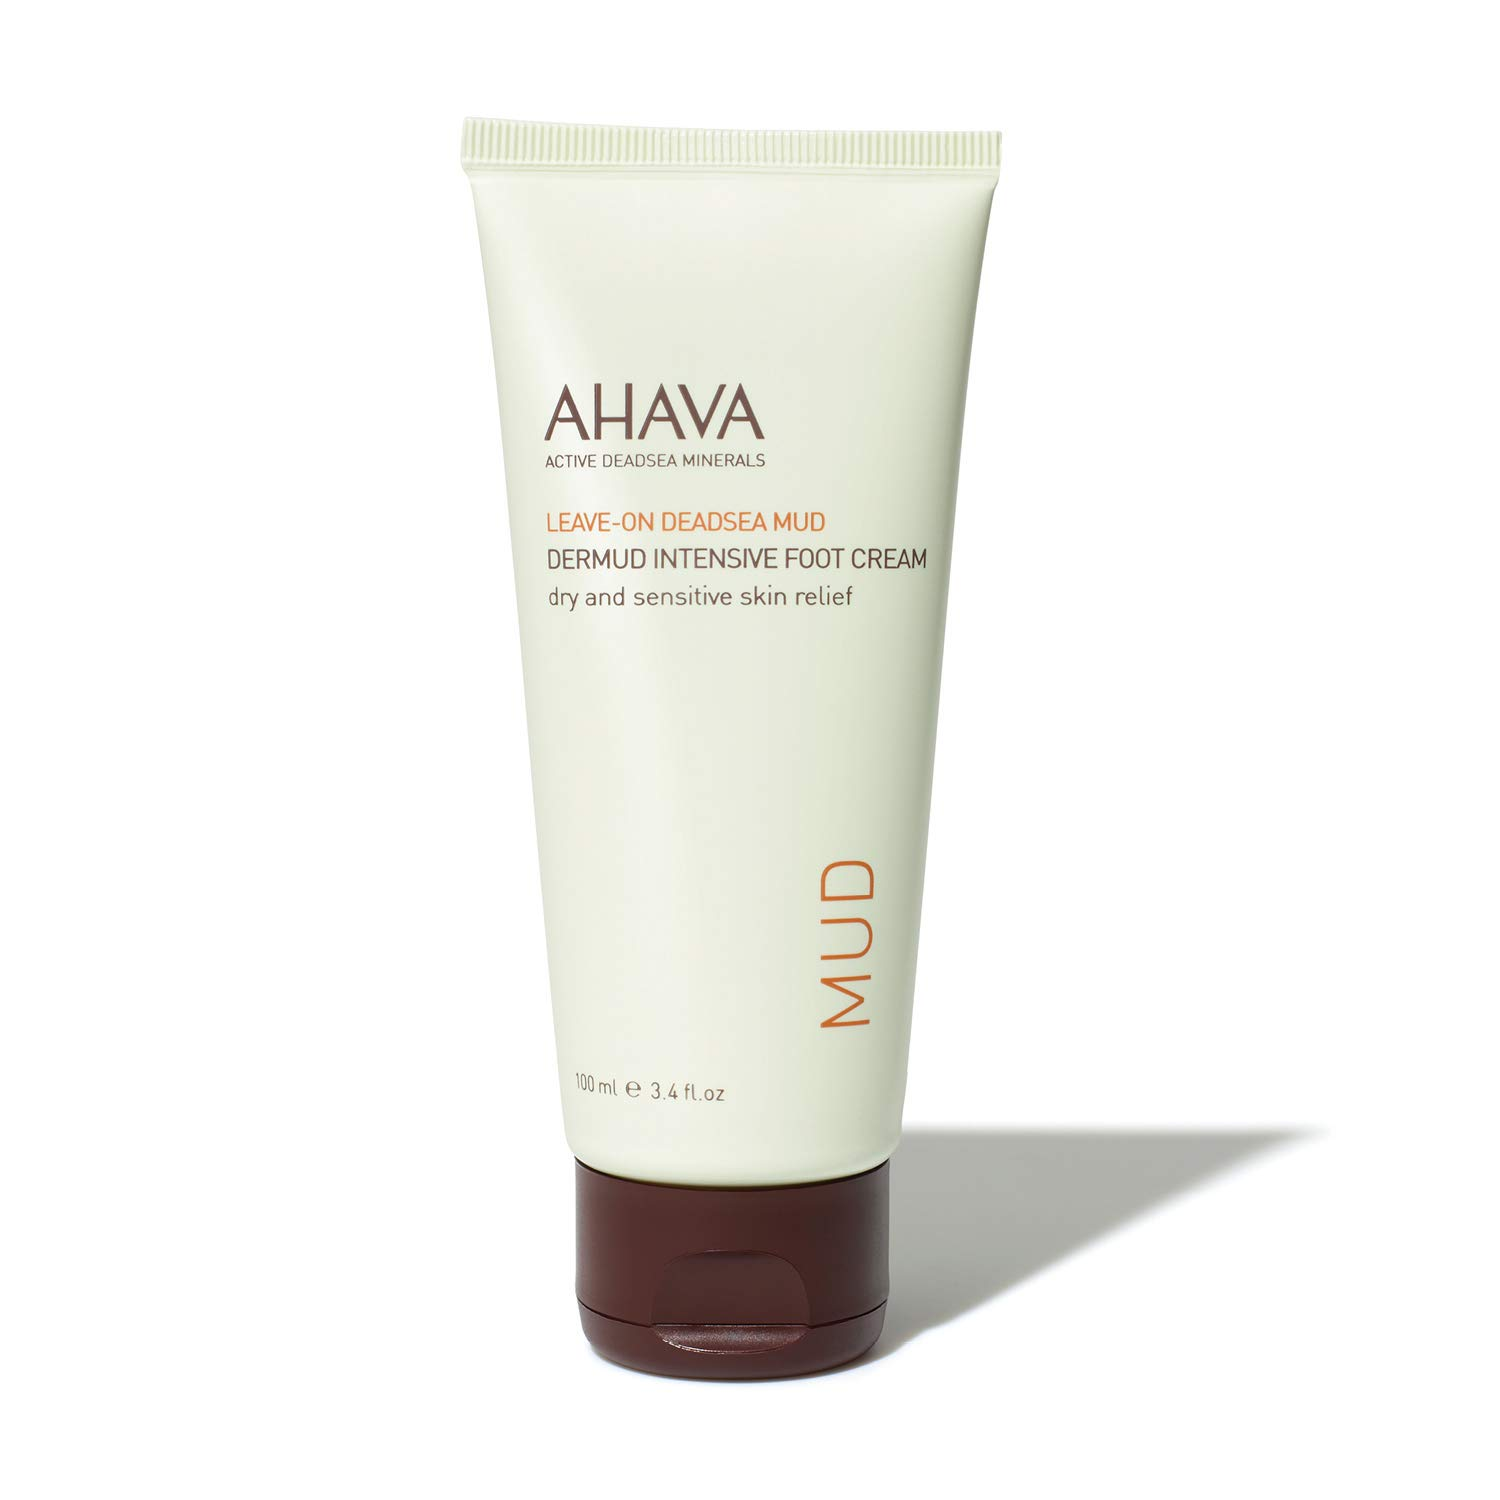 AHAVA Dermud Intensive Foot Cream, 3.4 Fl Oz: Premium Beauty